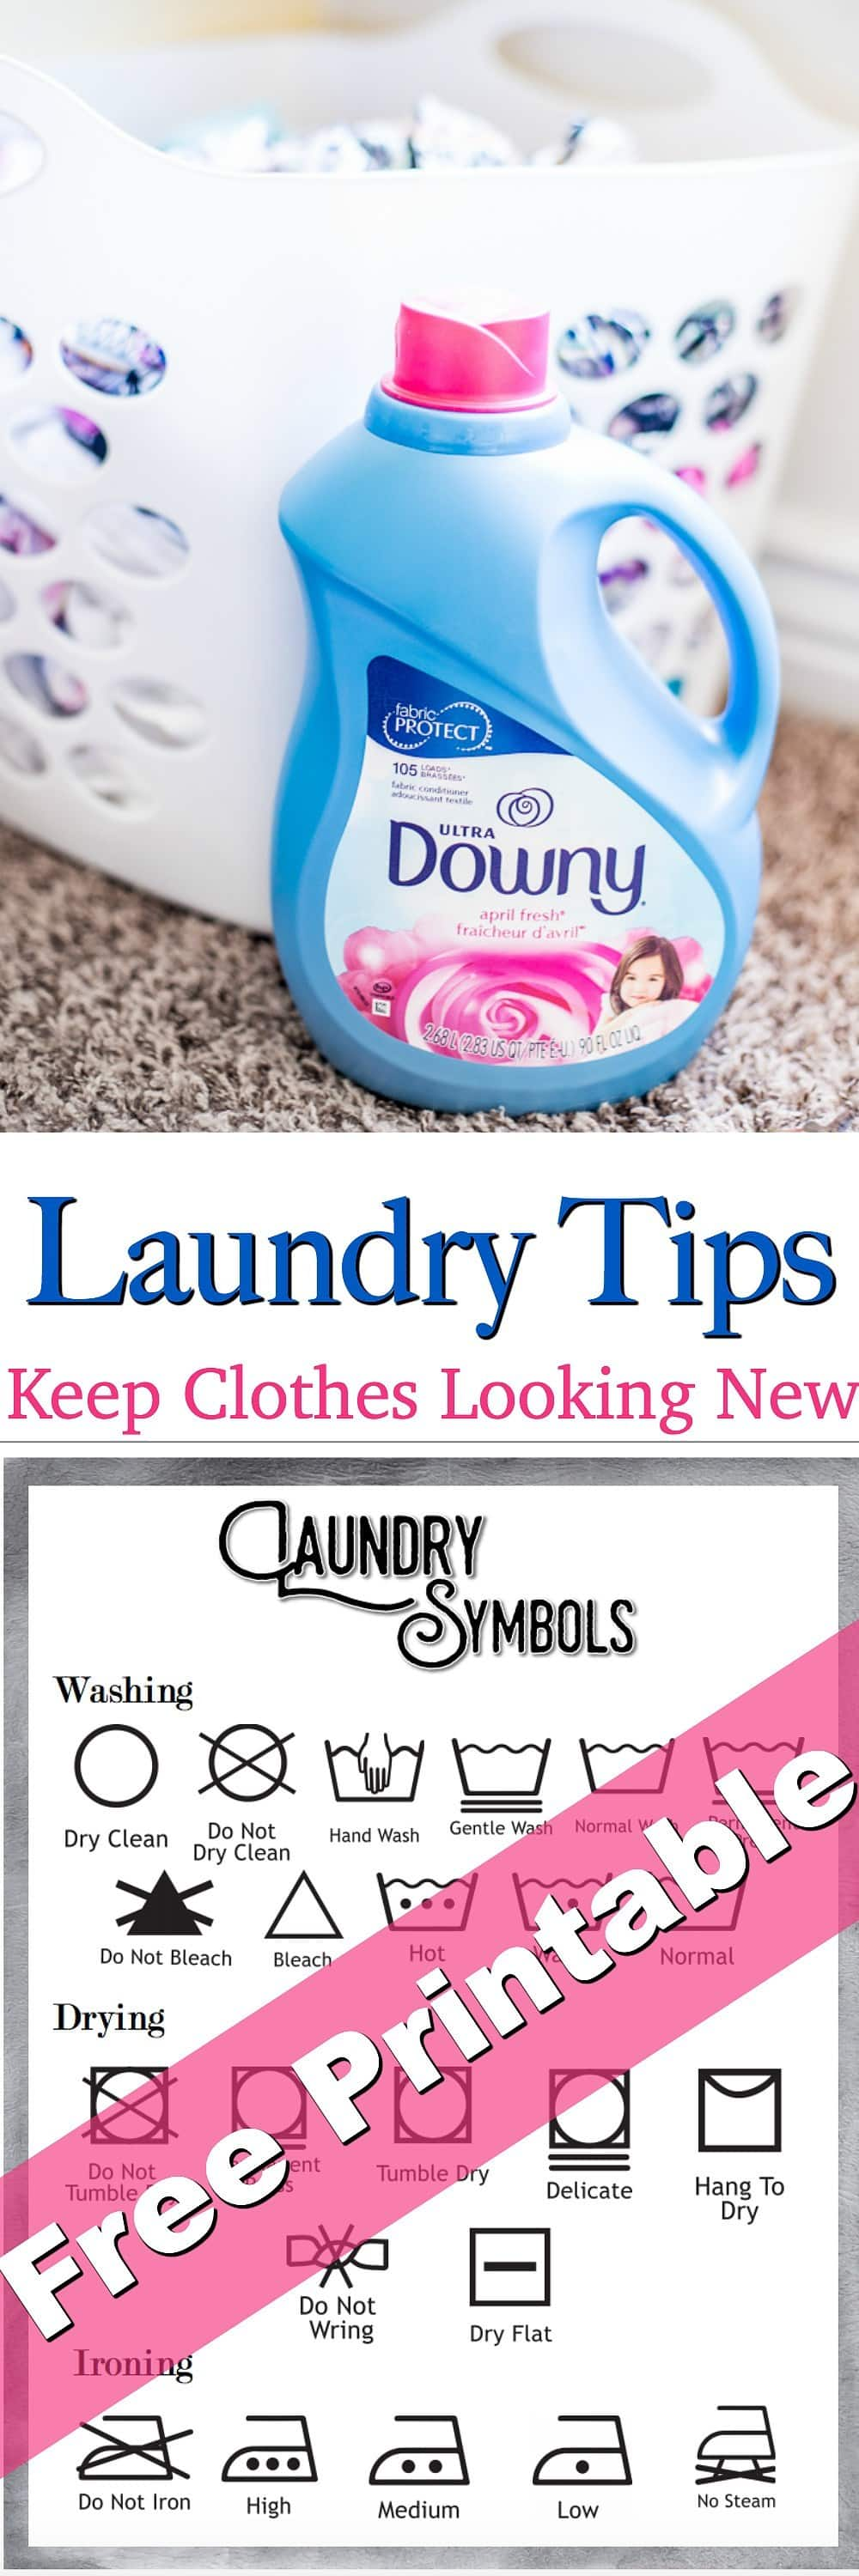 No one likes to see their clothes worn out and dull! Follow these top Laundry Tips and you will keep your clothes looking new longer!  Plus get a FREE Laundry Symbols Printable!